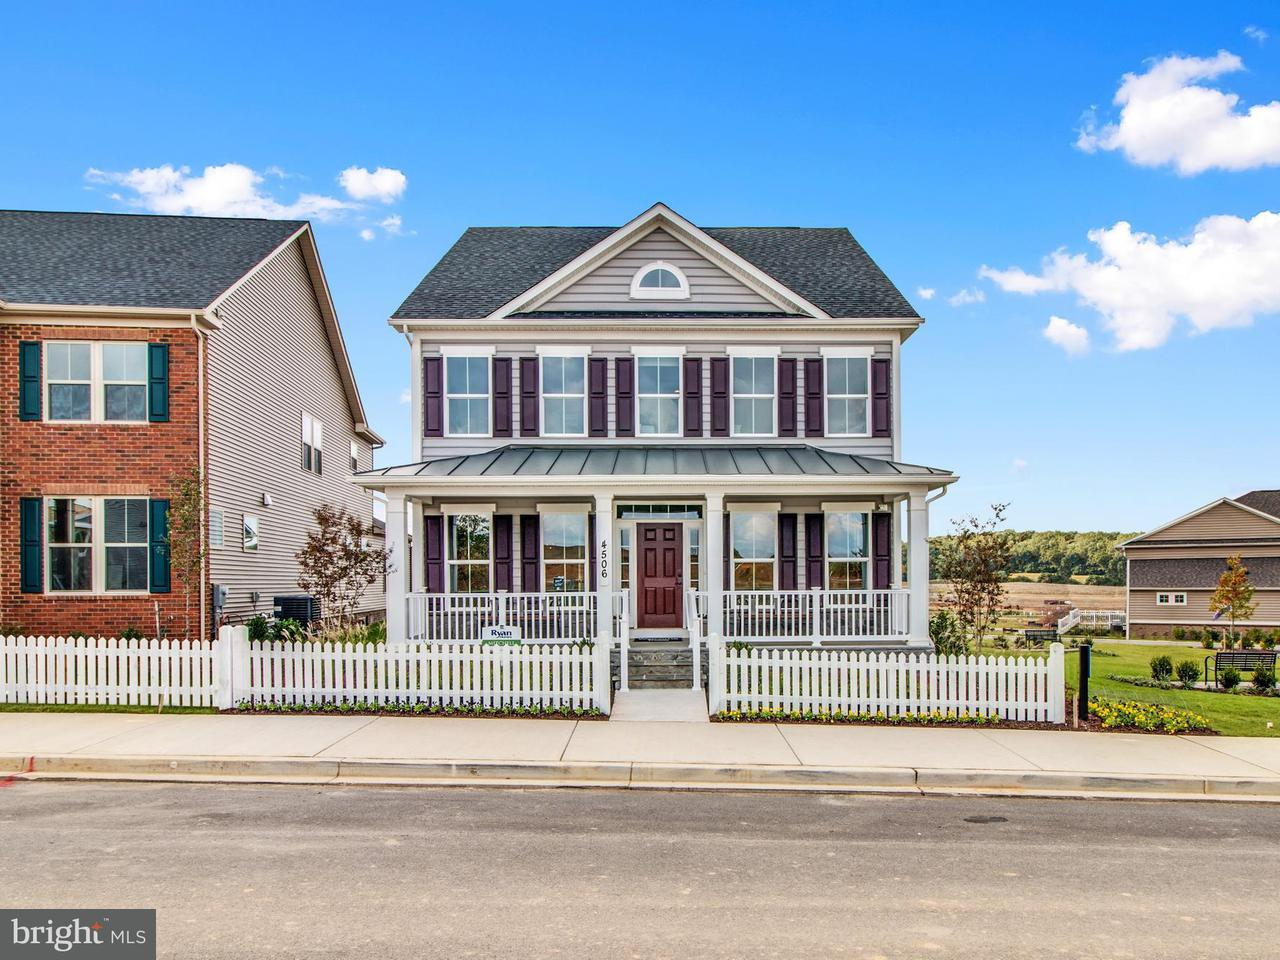 Single Family Home for Sale at 4330 Arbor Wood Circle 4330 Arbor Wood Circle Burtonsville, Maryland 20866 United States